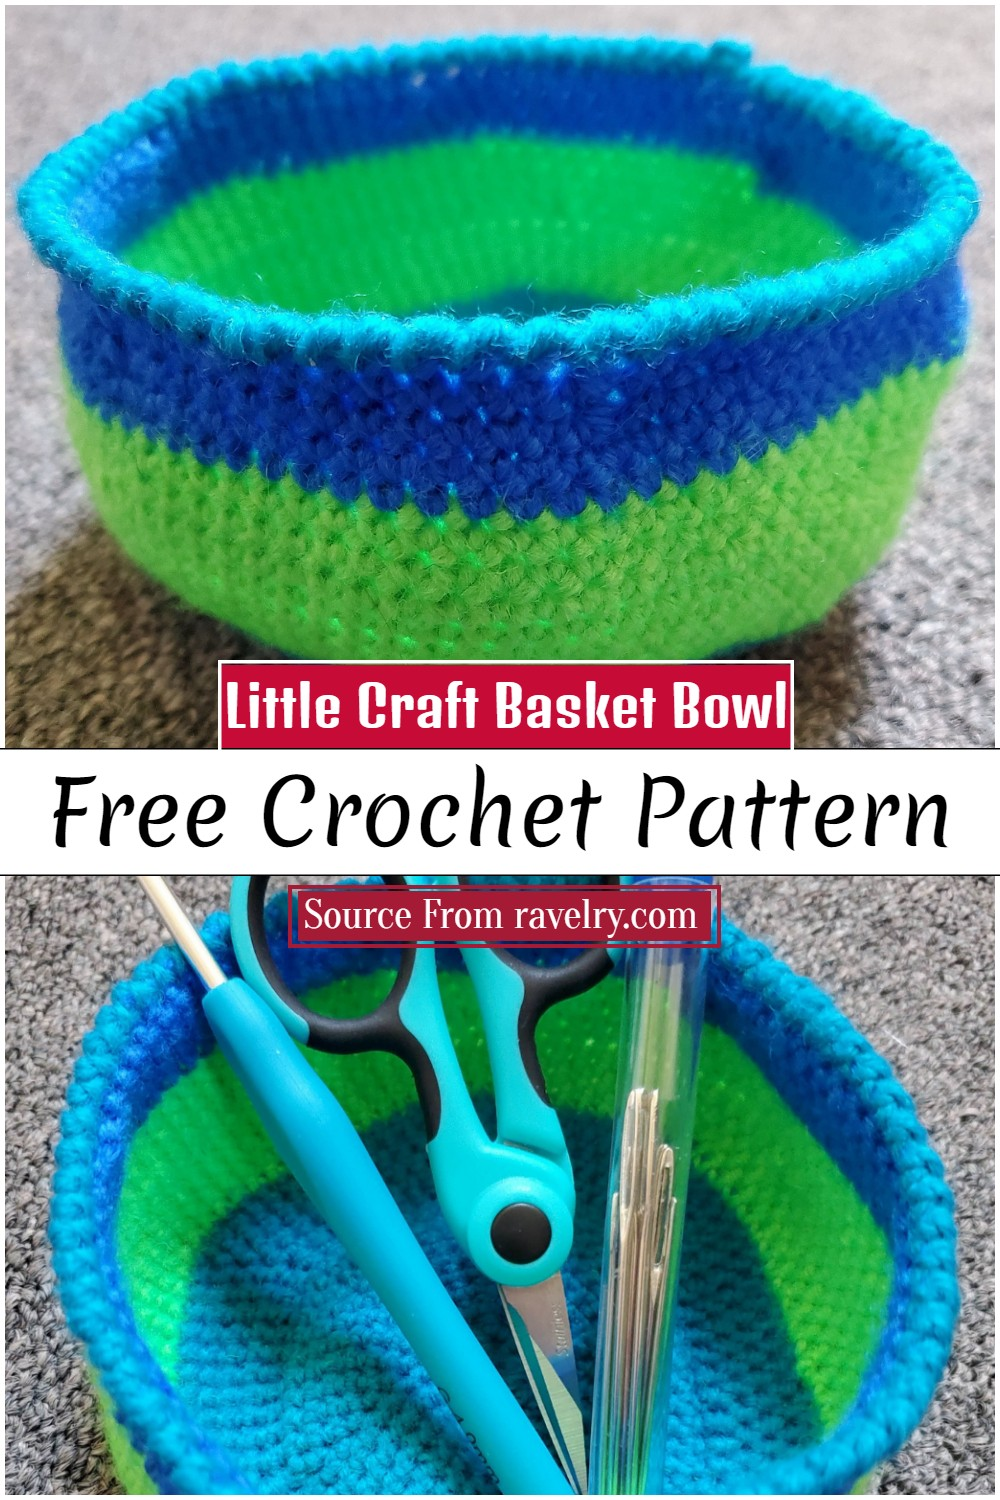 Crochet Little Craft Basket Bowl Pattern